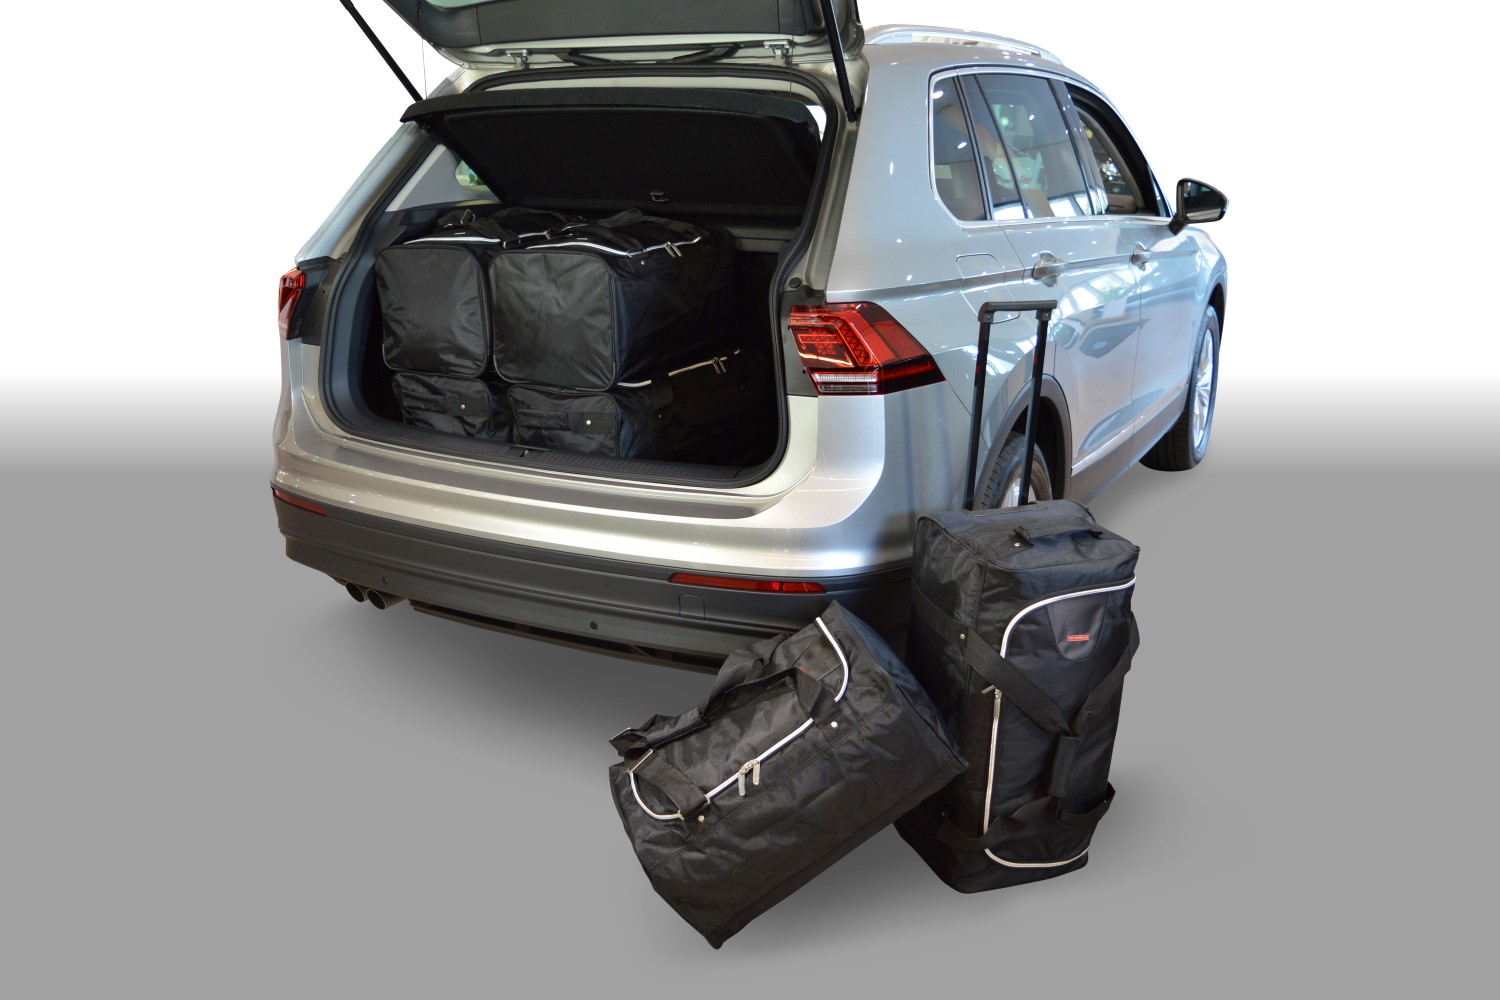 tiguan volkswagen tiguan ii 2015 present car bags travel bag set low boot floor. Black Bedroom Furniture Sets. Home Design Ideas